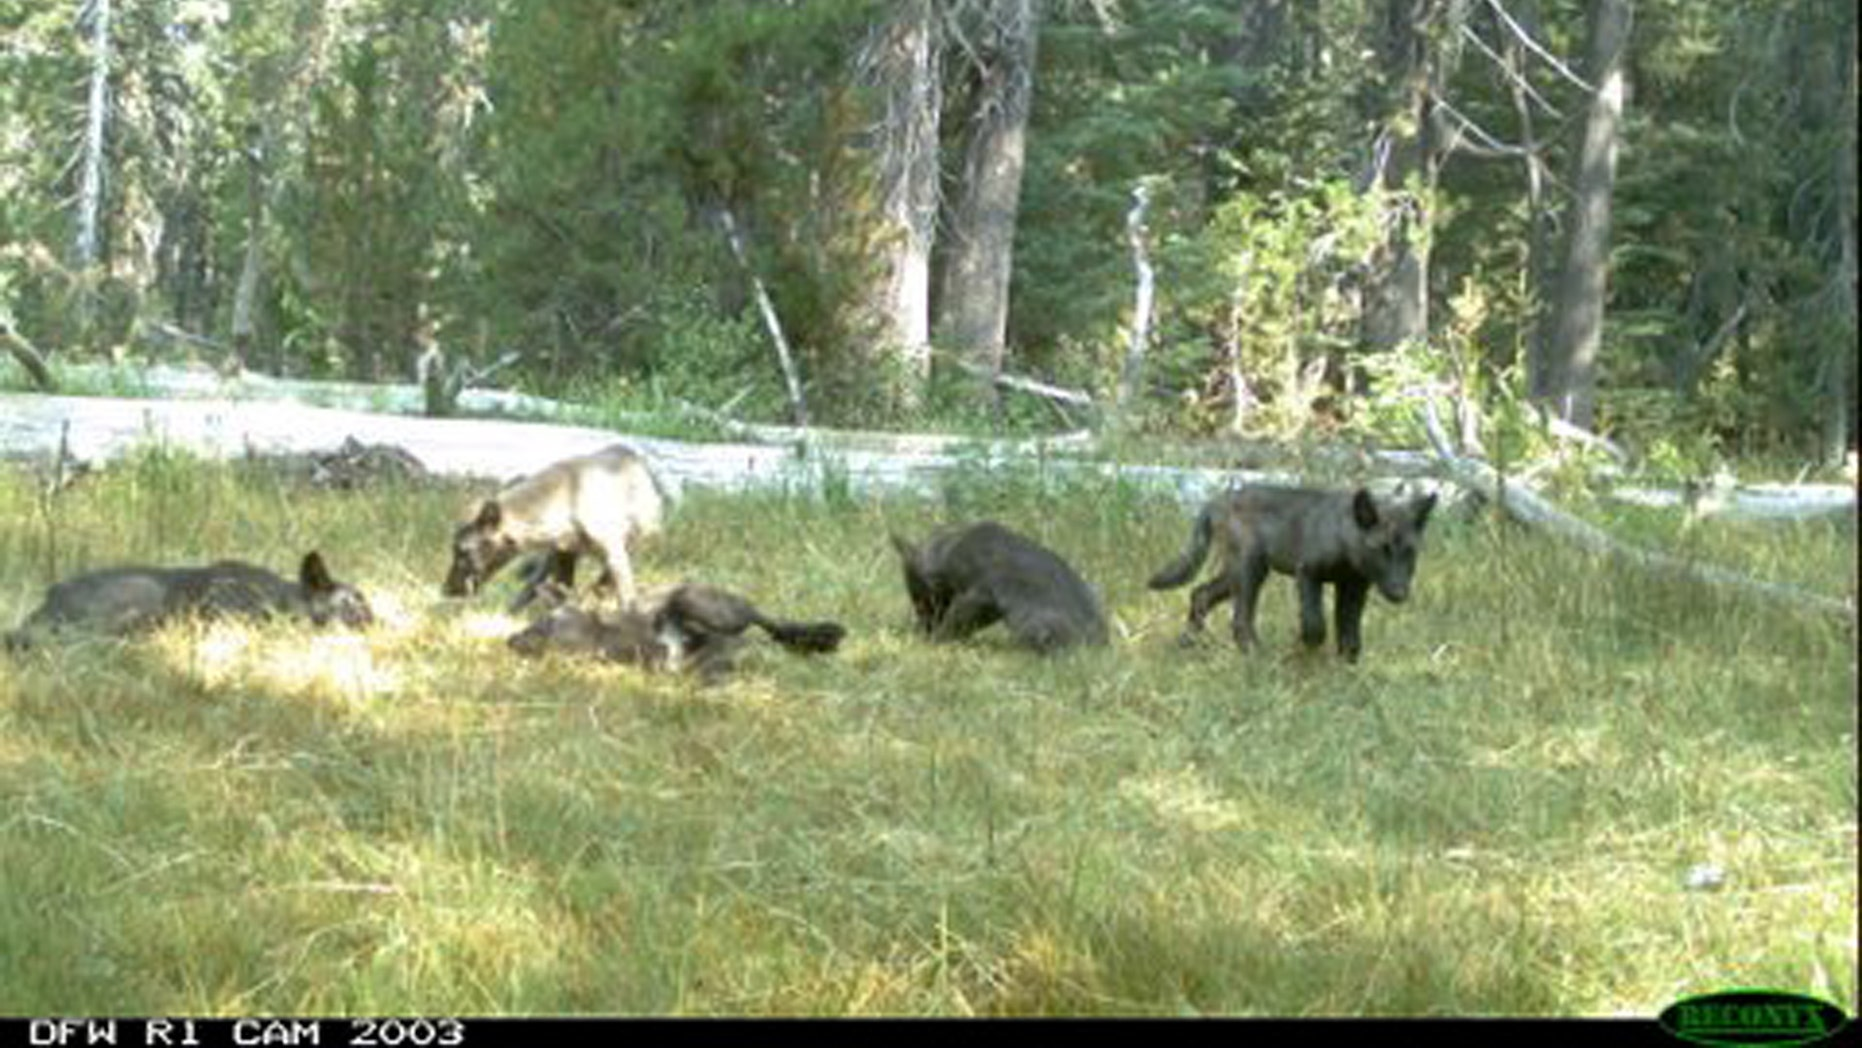 File photo: A wolf pack is shown captured on a trail camera near Mt. Shasta in Siskiyou County, California in this August 9, 2015 handout photo released to Reuters August 20, 2015. (REUTERS/California Department of Fish and Wildlife/Handout)